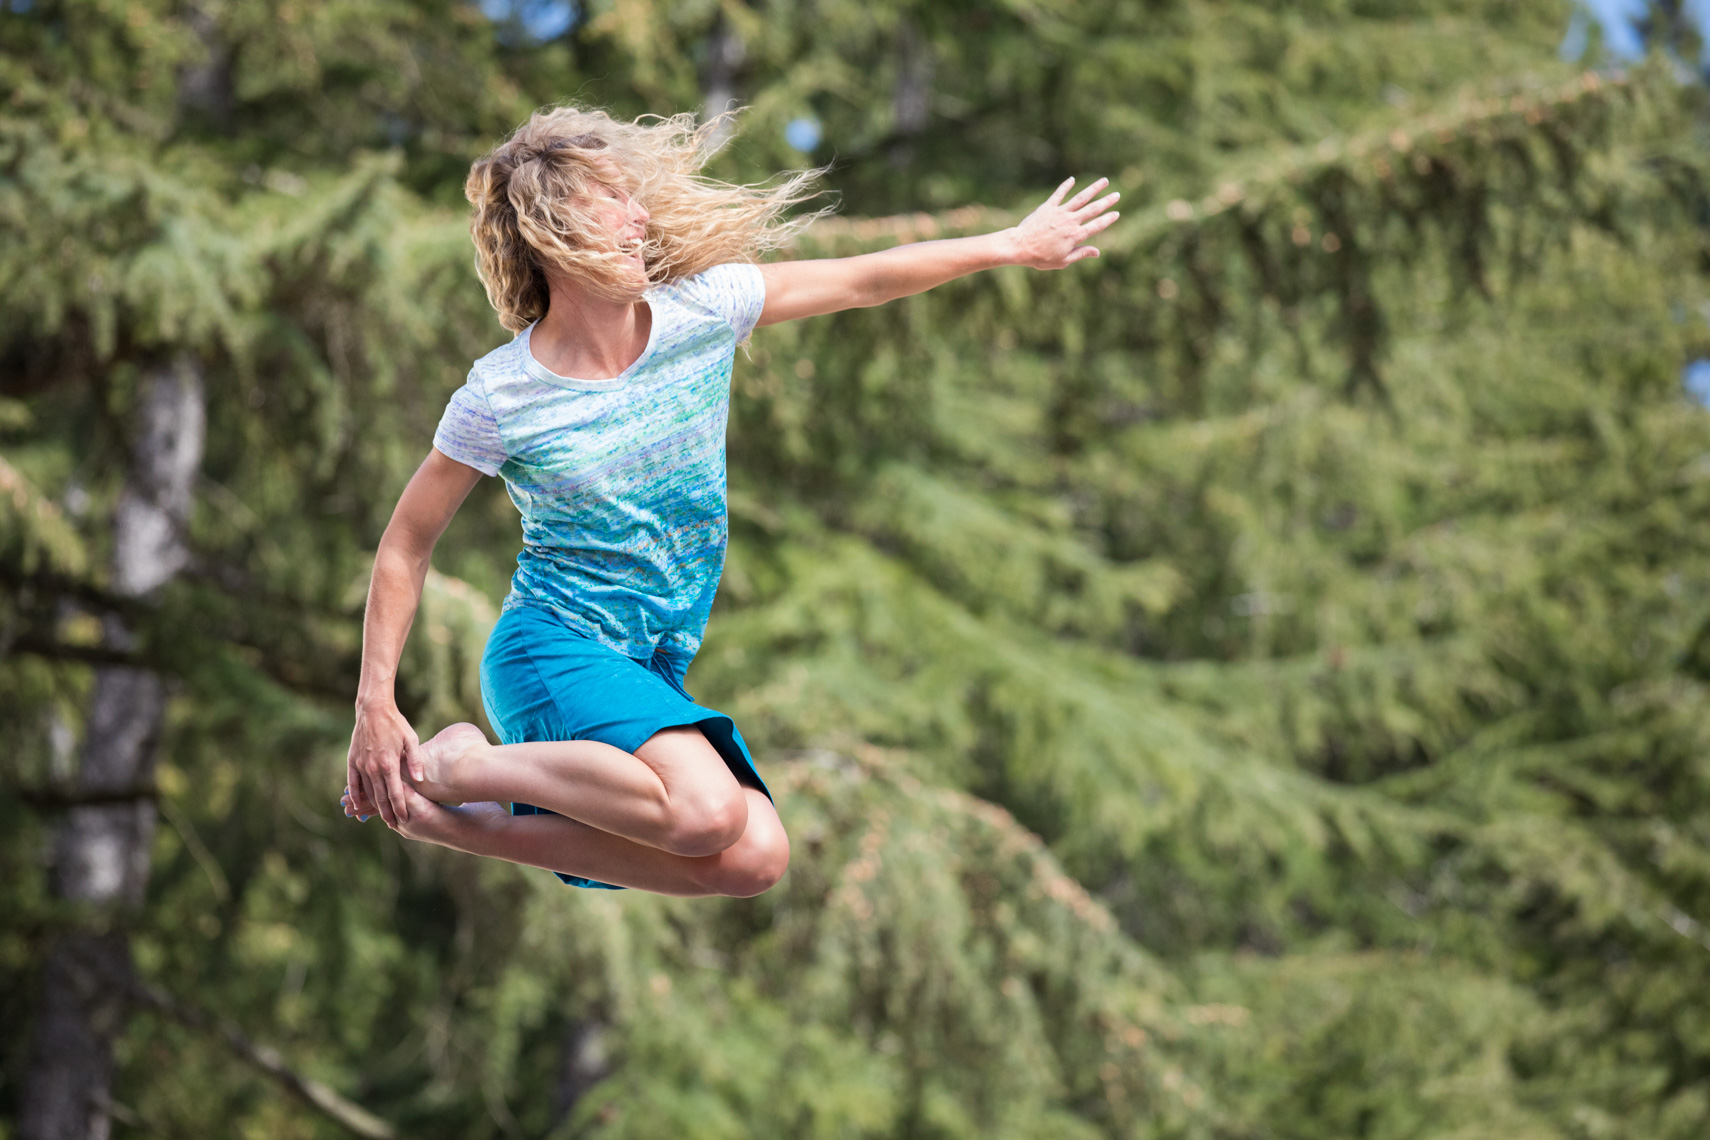 Woman leaping in the air and grabbing her toes